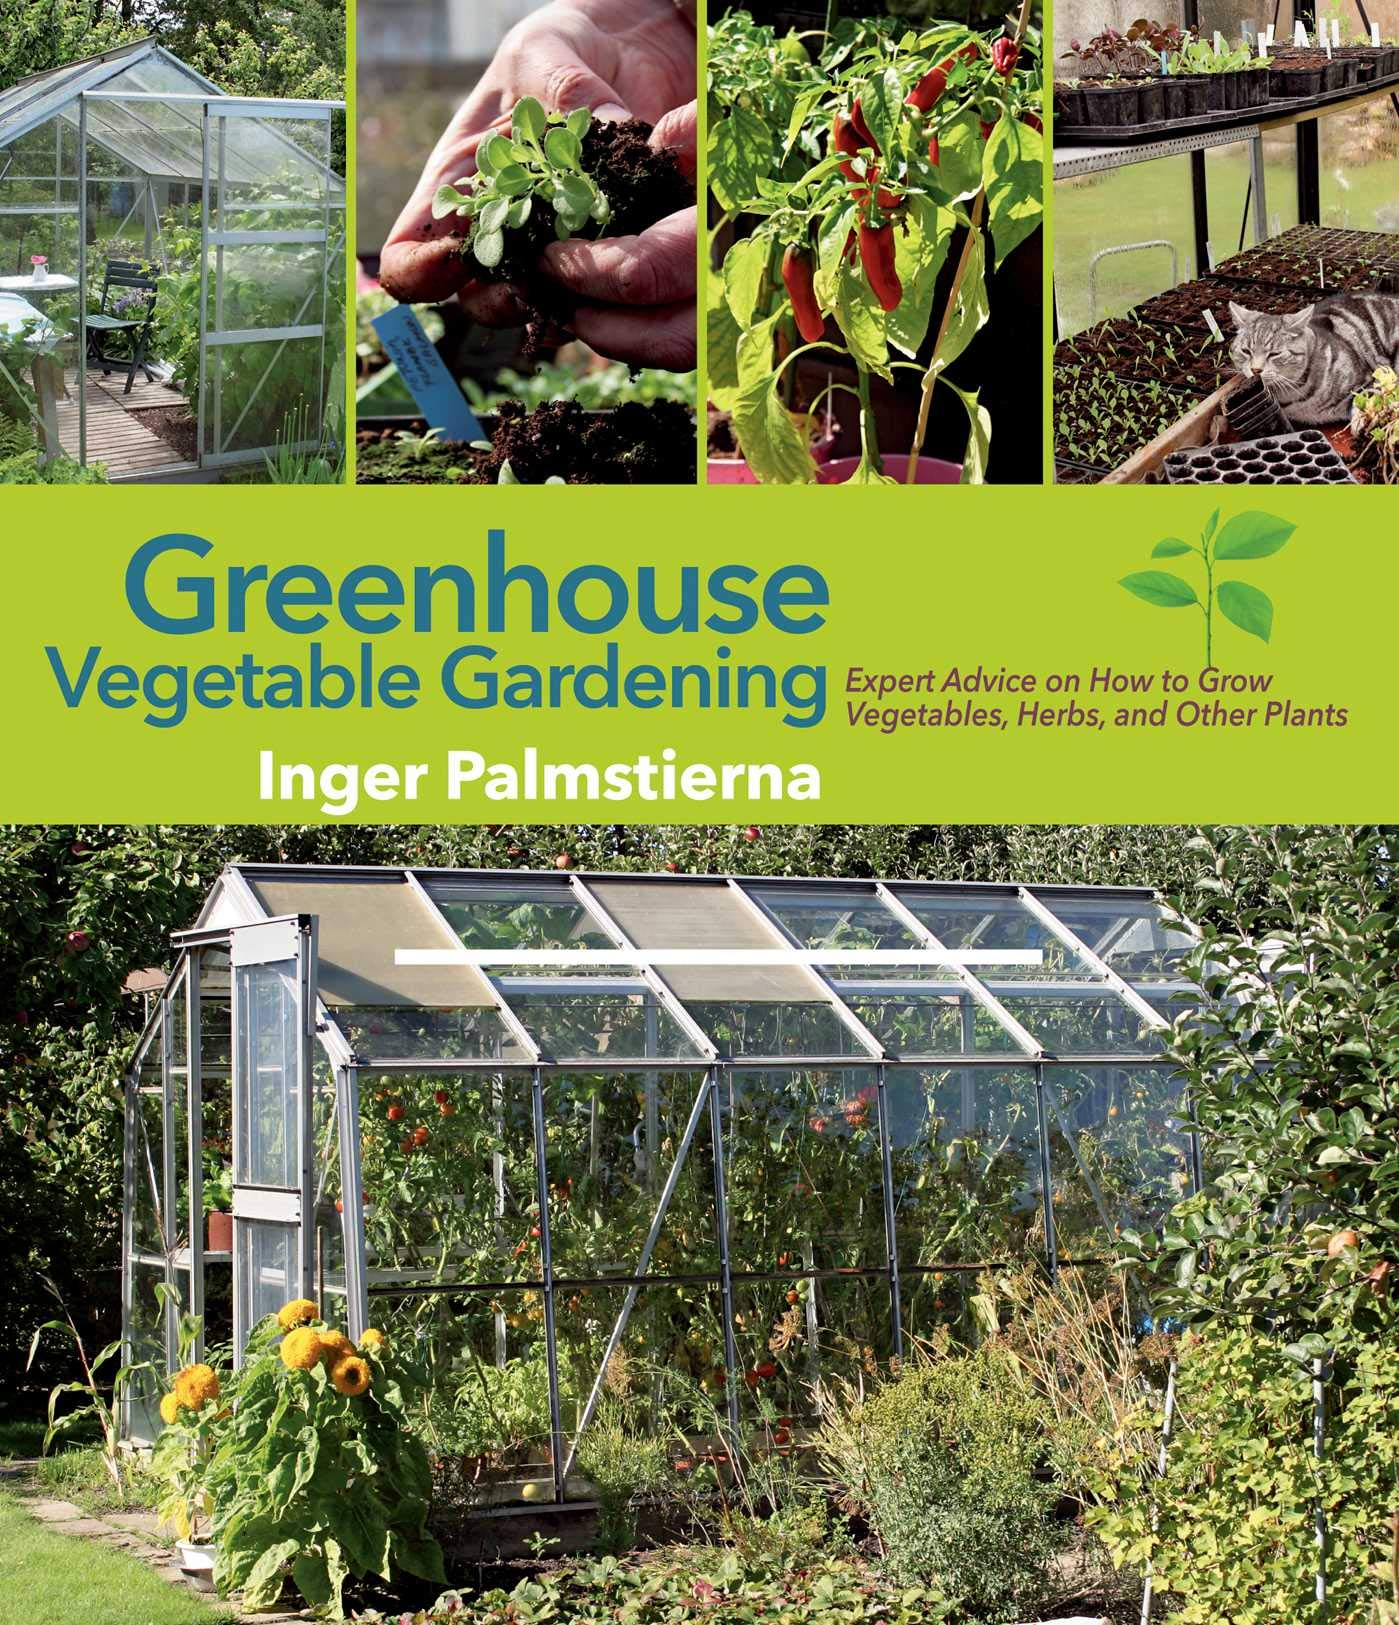 Charmant Greenhouse Vegetable Gardening: Expert Advice On How To Grow Vegetables,  Herbs, And Other Plants: Inger Palmstierna: 9781629147390: Amazon.com: Books